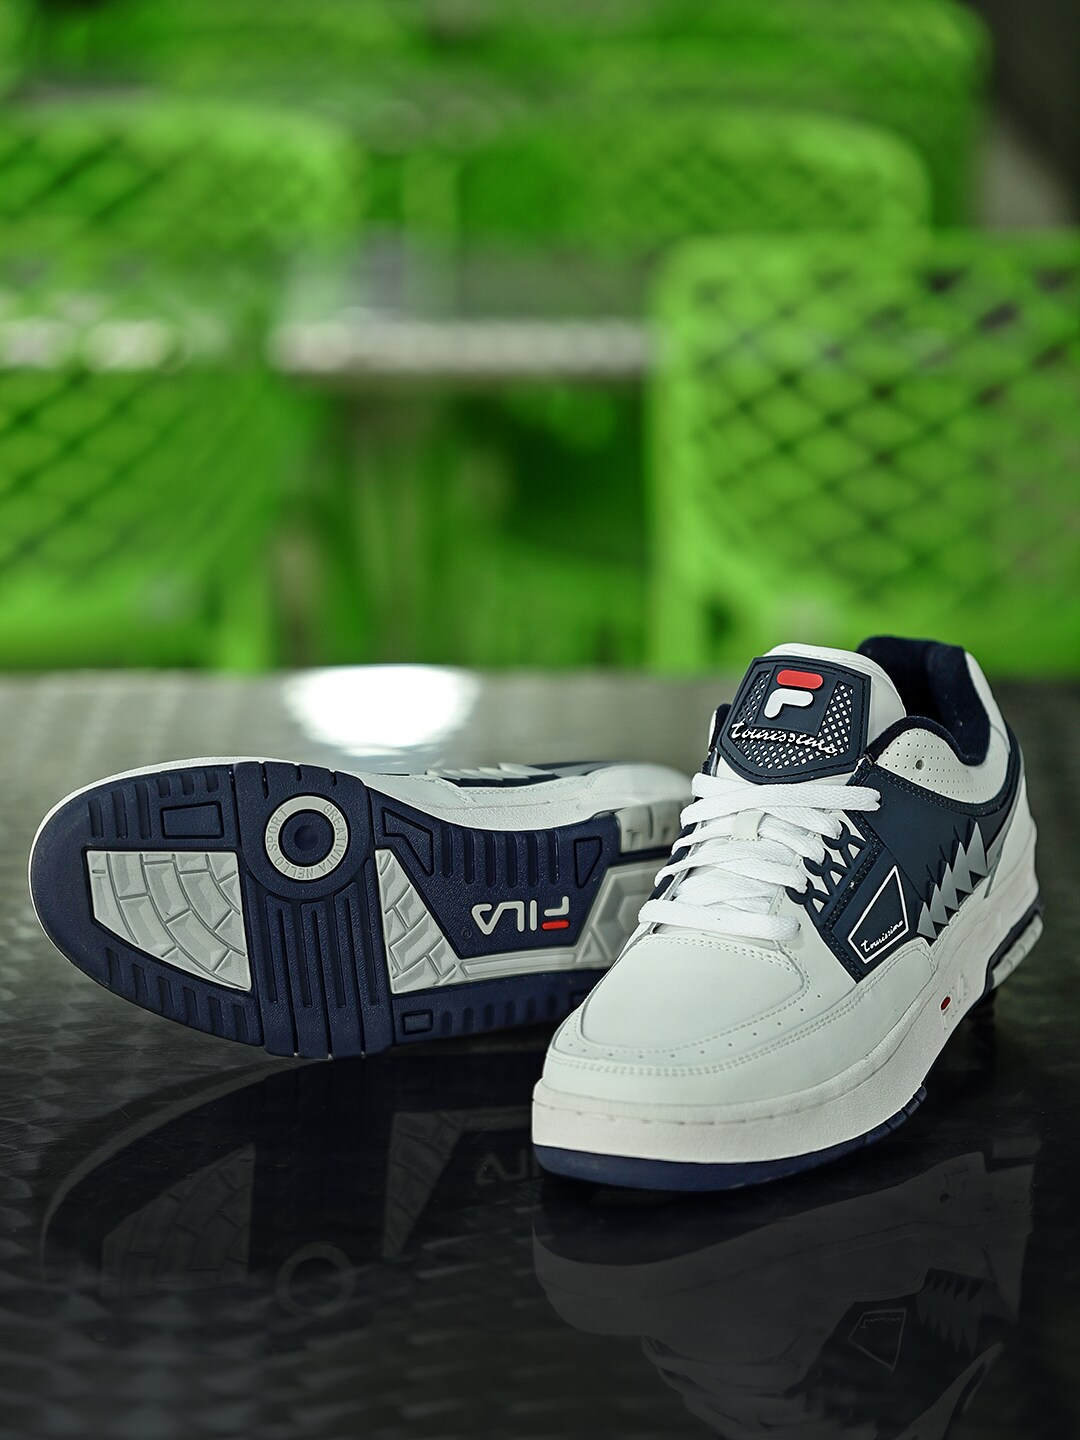 247c1e259929 Fila Synthetic Leather Casual Shoes - Buy Fila Synthetic Leather Casual  Shoes online in India